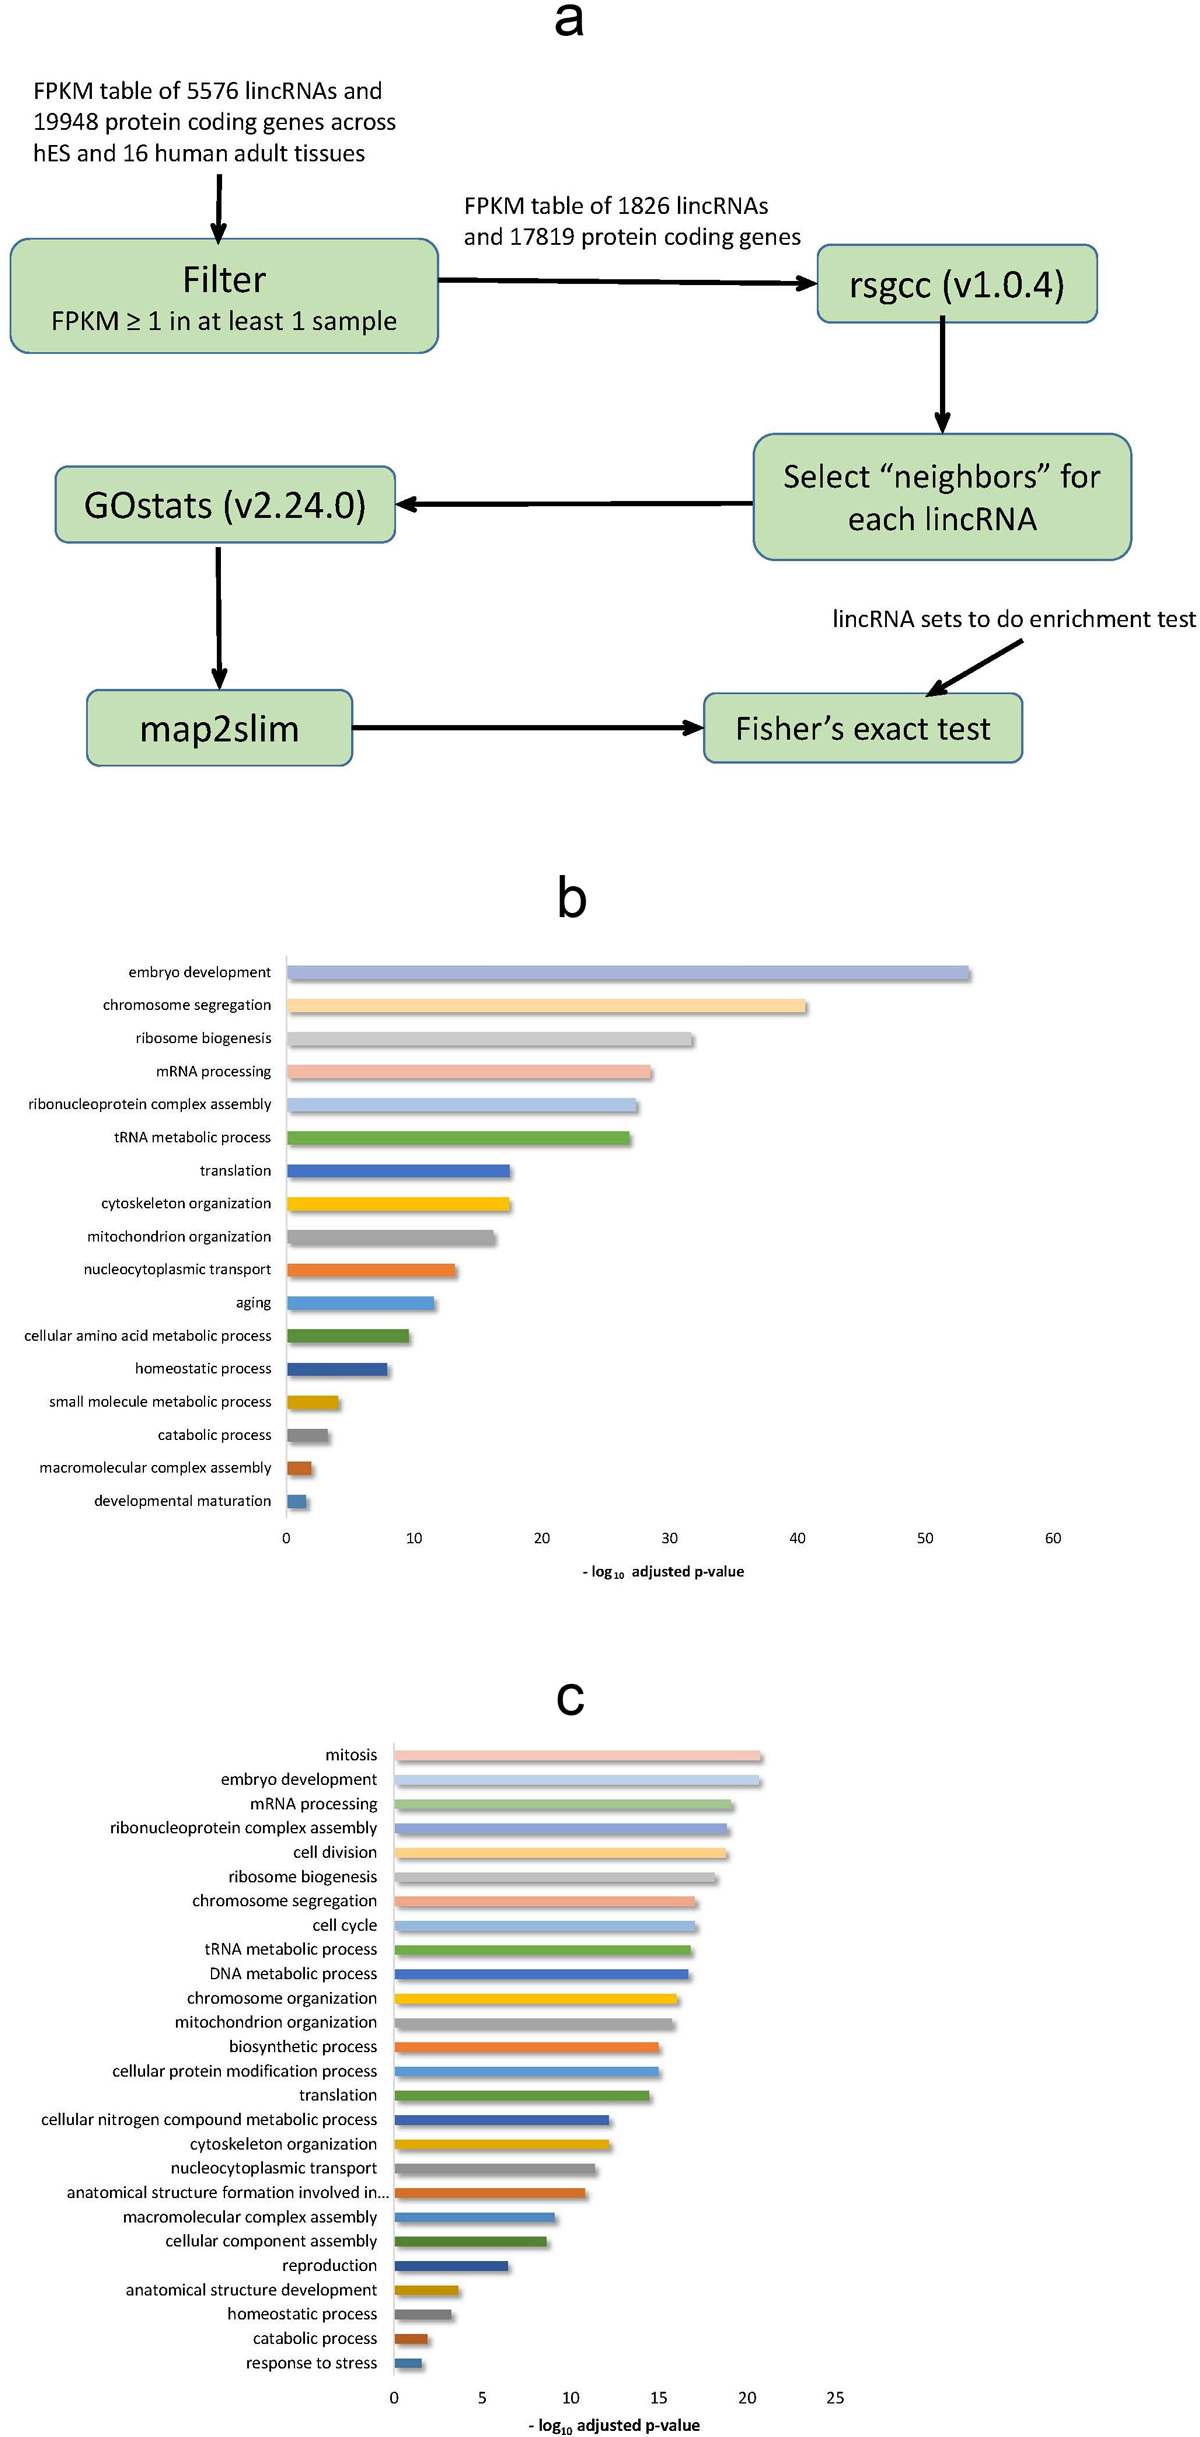 https://static-content.springer.com/image/art%3A10.1186%2F1471-2164-14-S5-S3/MediaObjects/12864_2013_Article_5399_Fig2_HTML.jpg